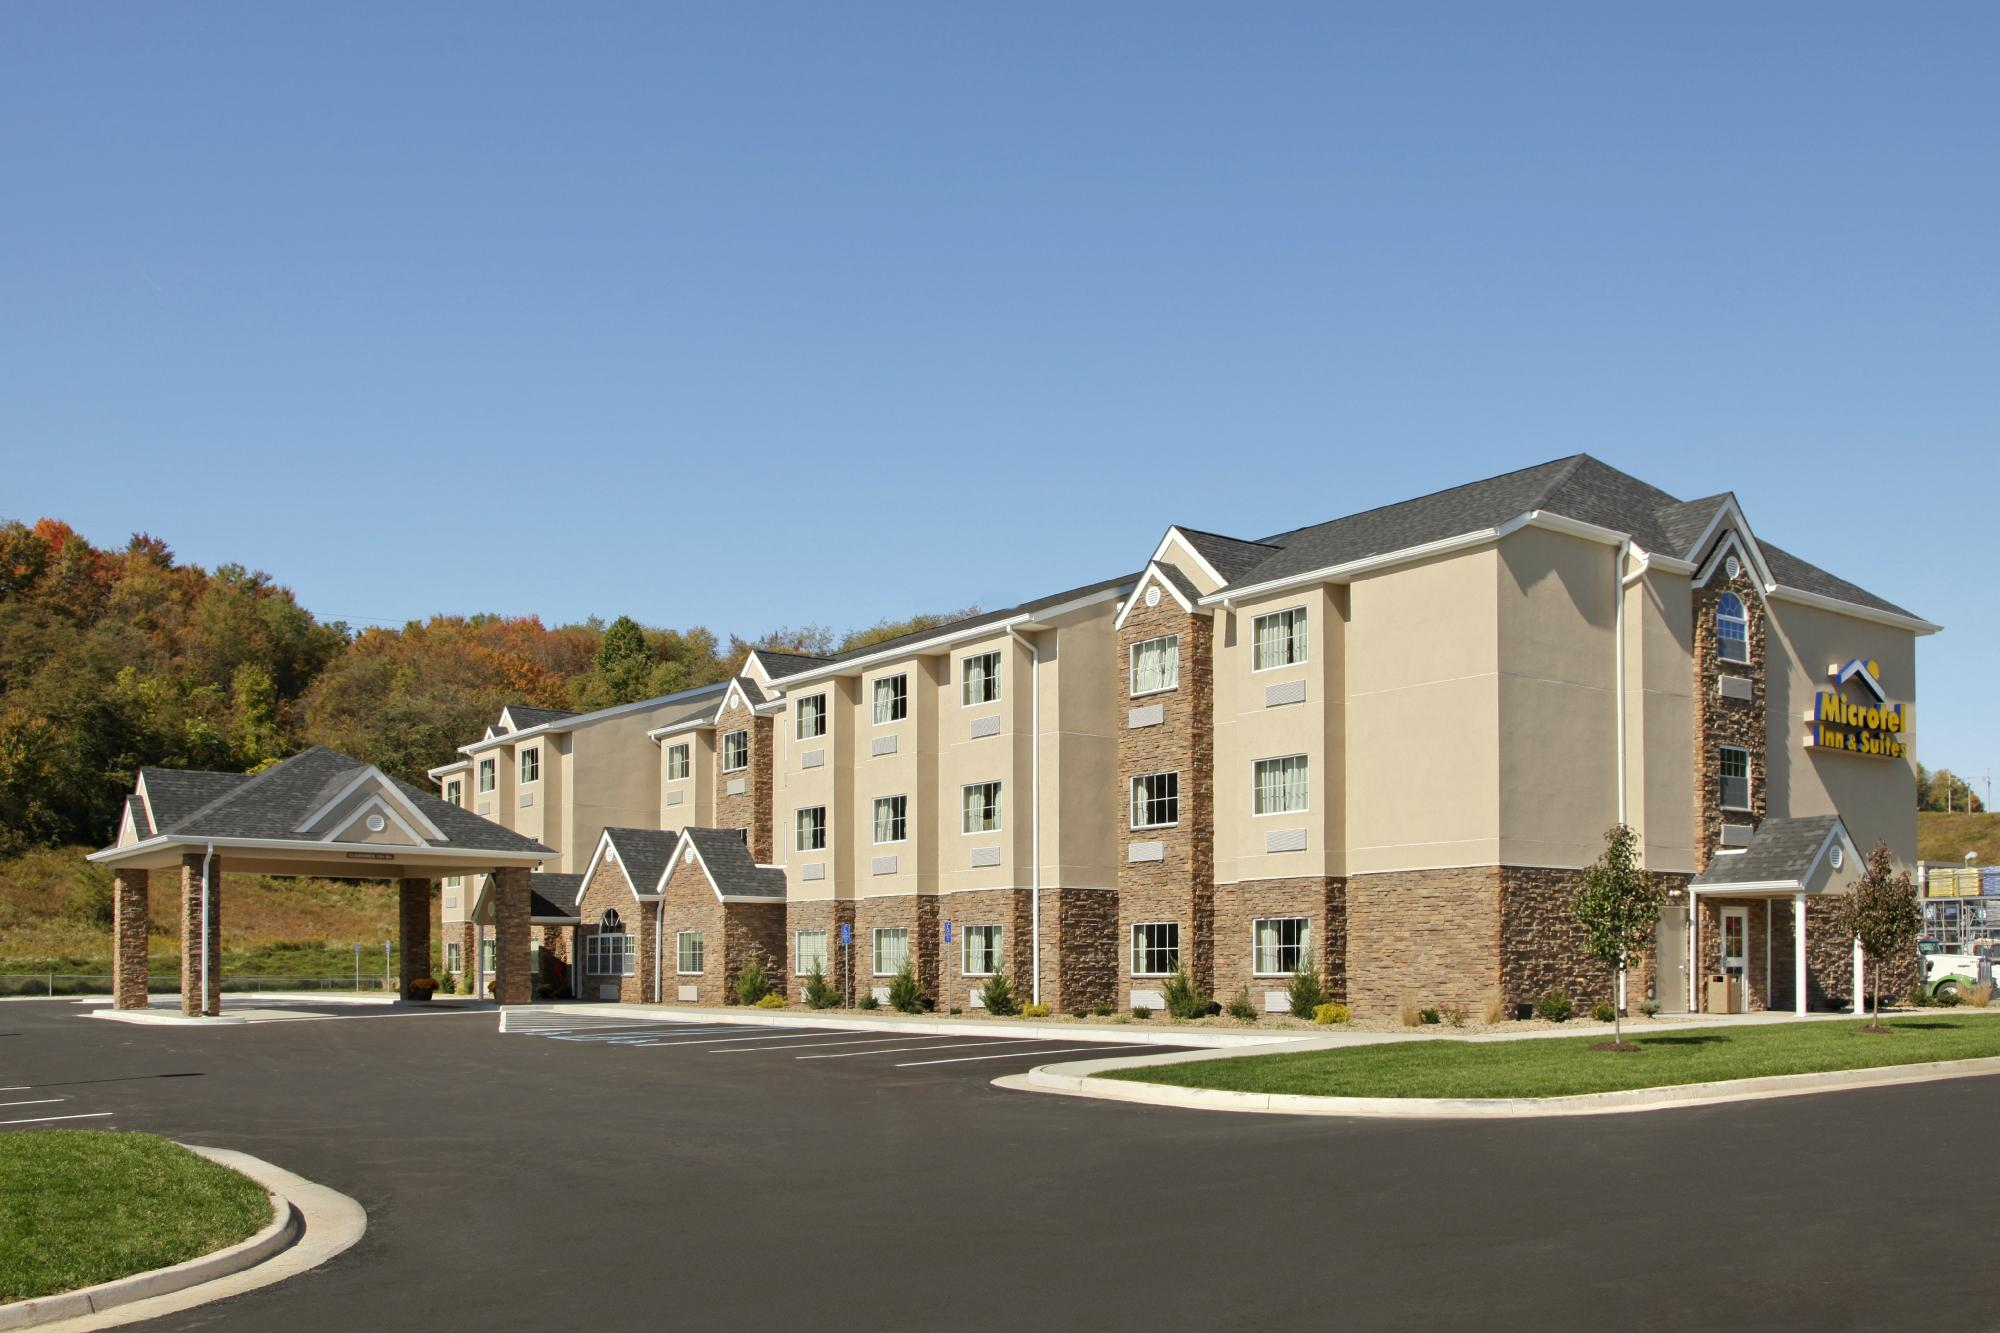 Microtel Inn & Suites by Wyndham Buckhannon